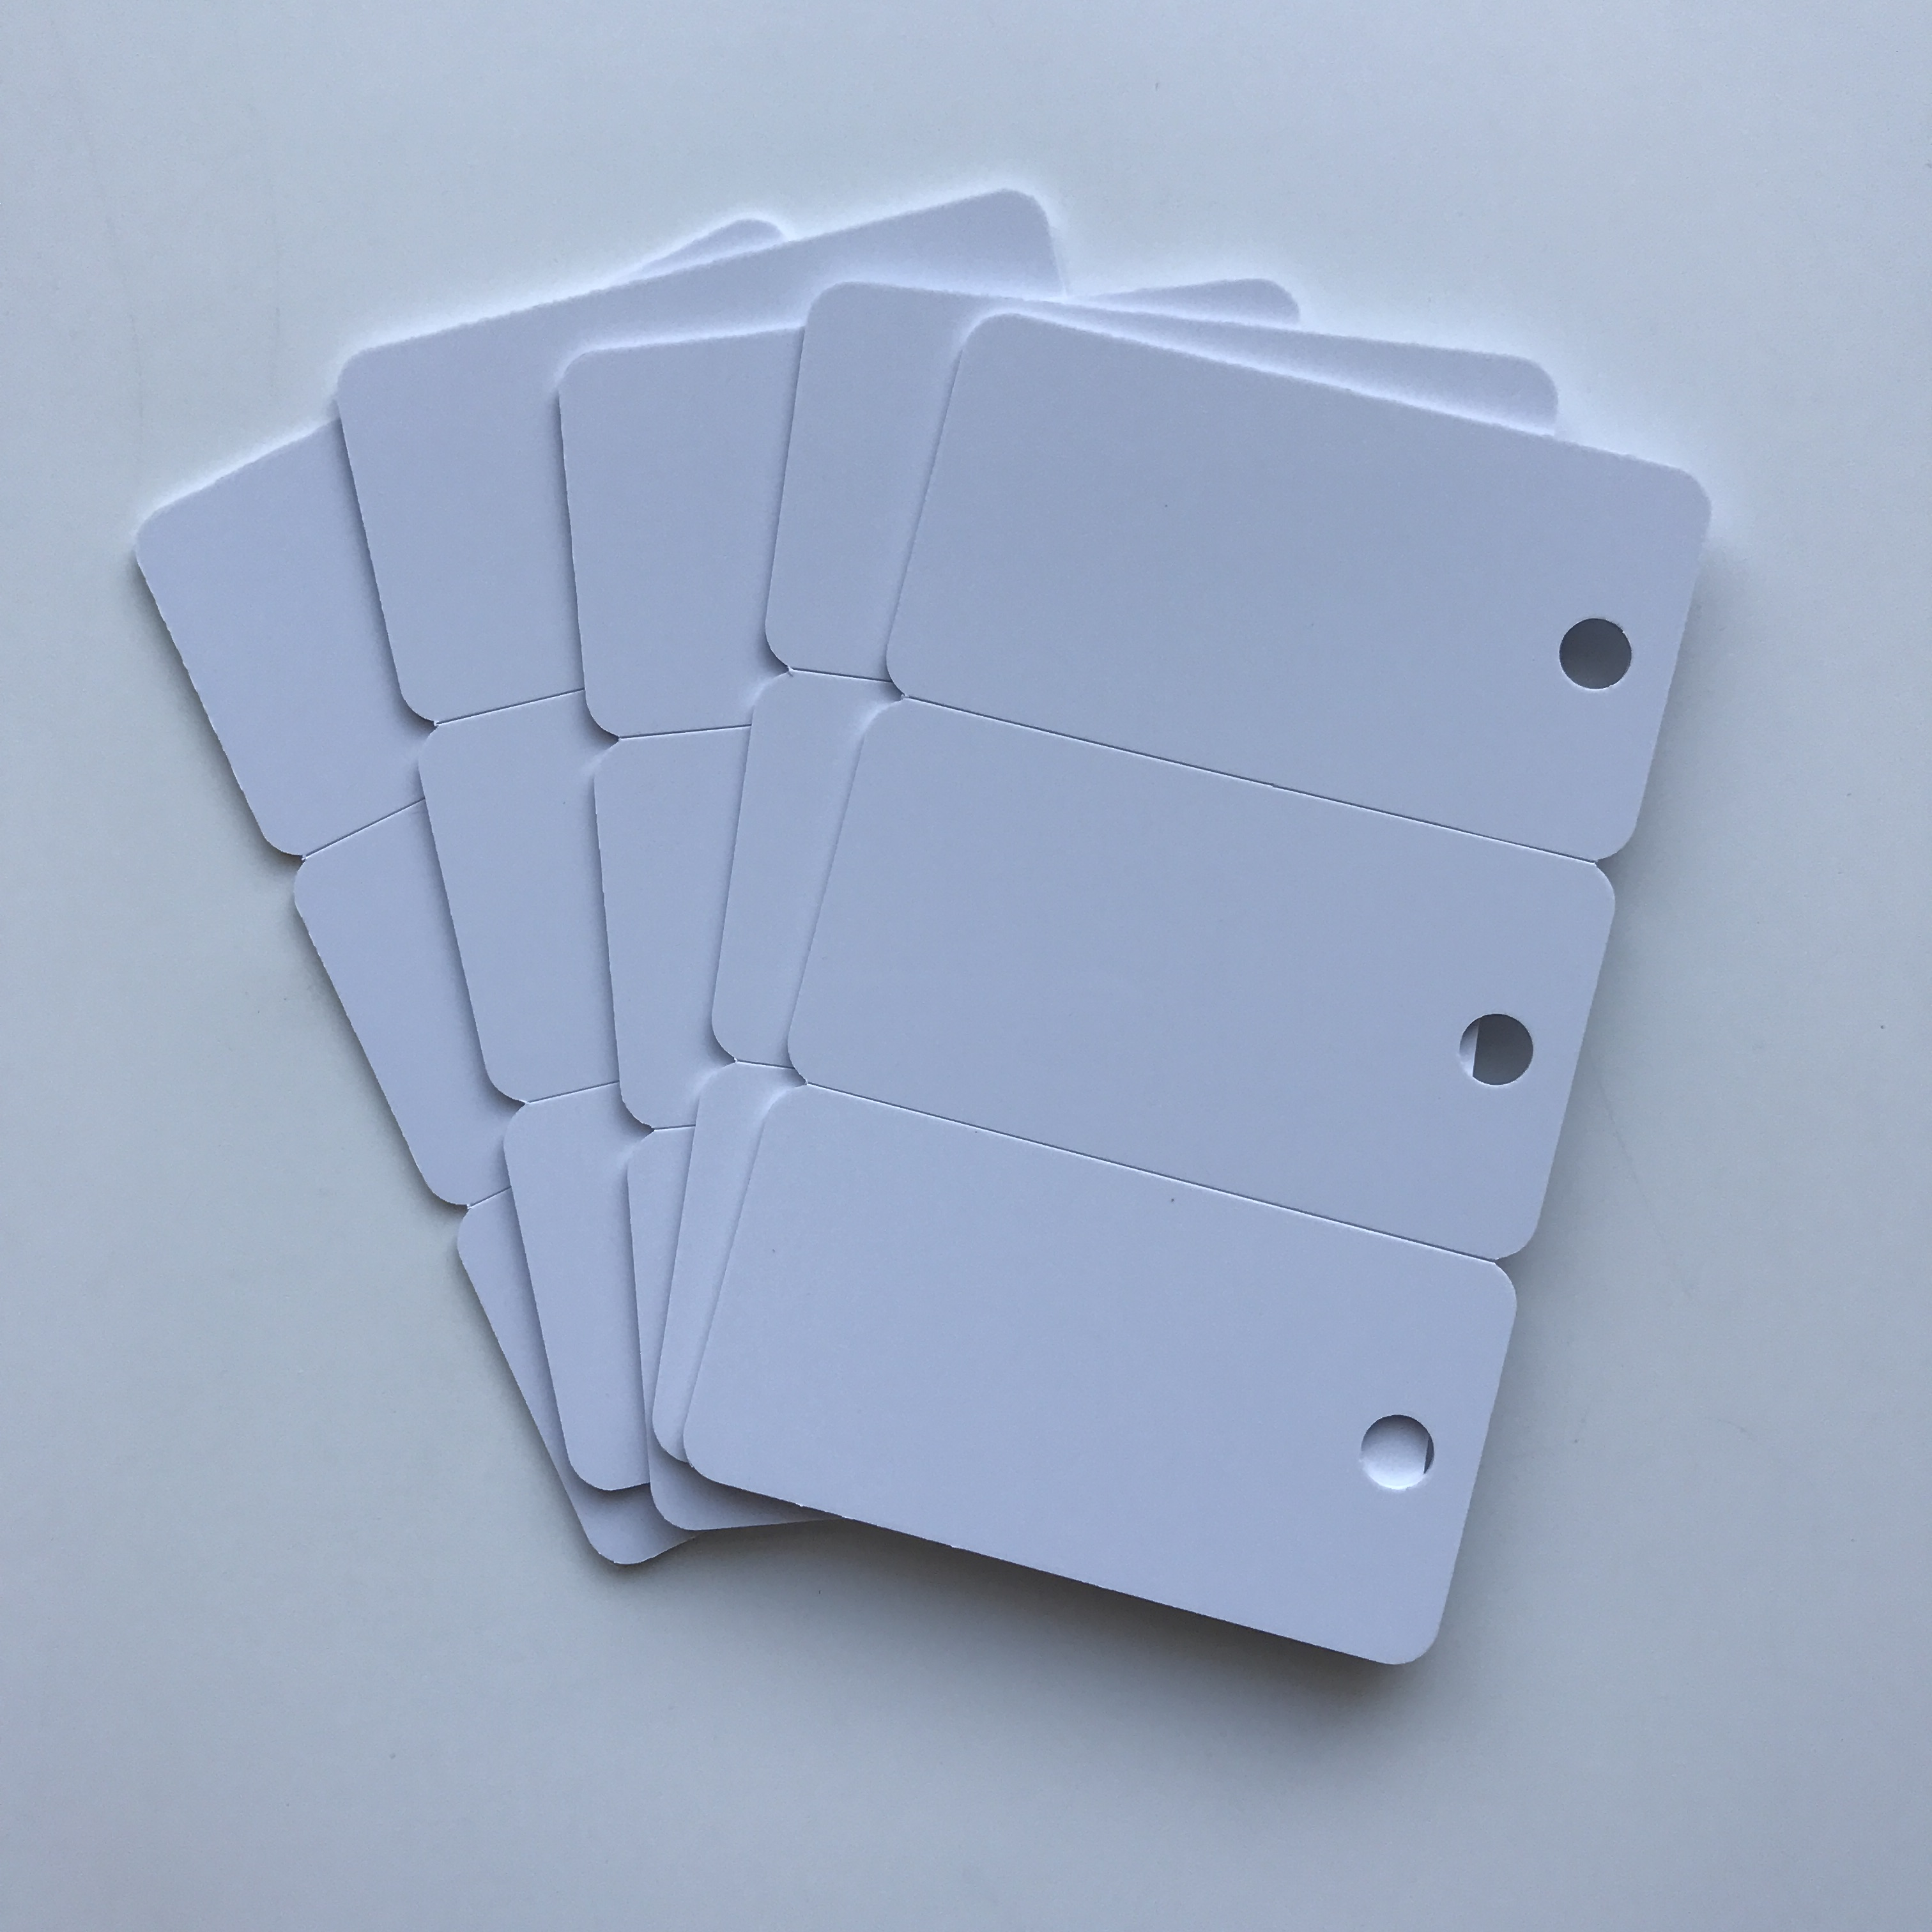 100PCS High Quality Plastic Blank Inkjet Printable 3up PVC Card for Access Control by Epson or Canon Printers